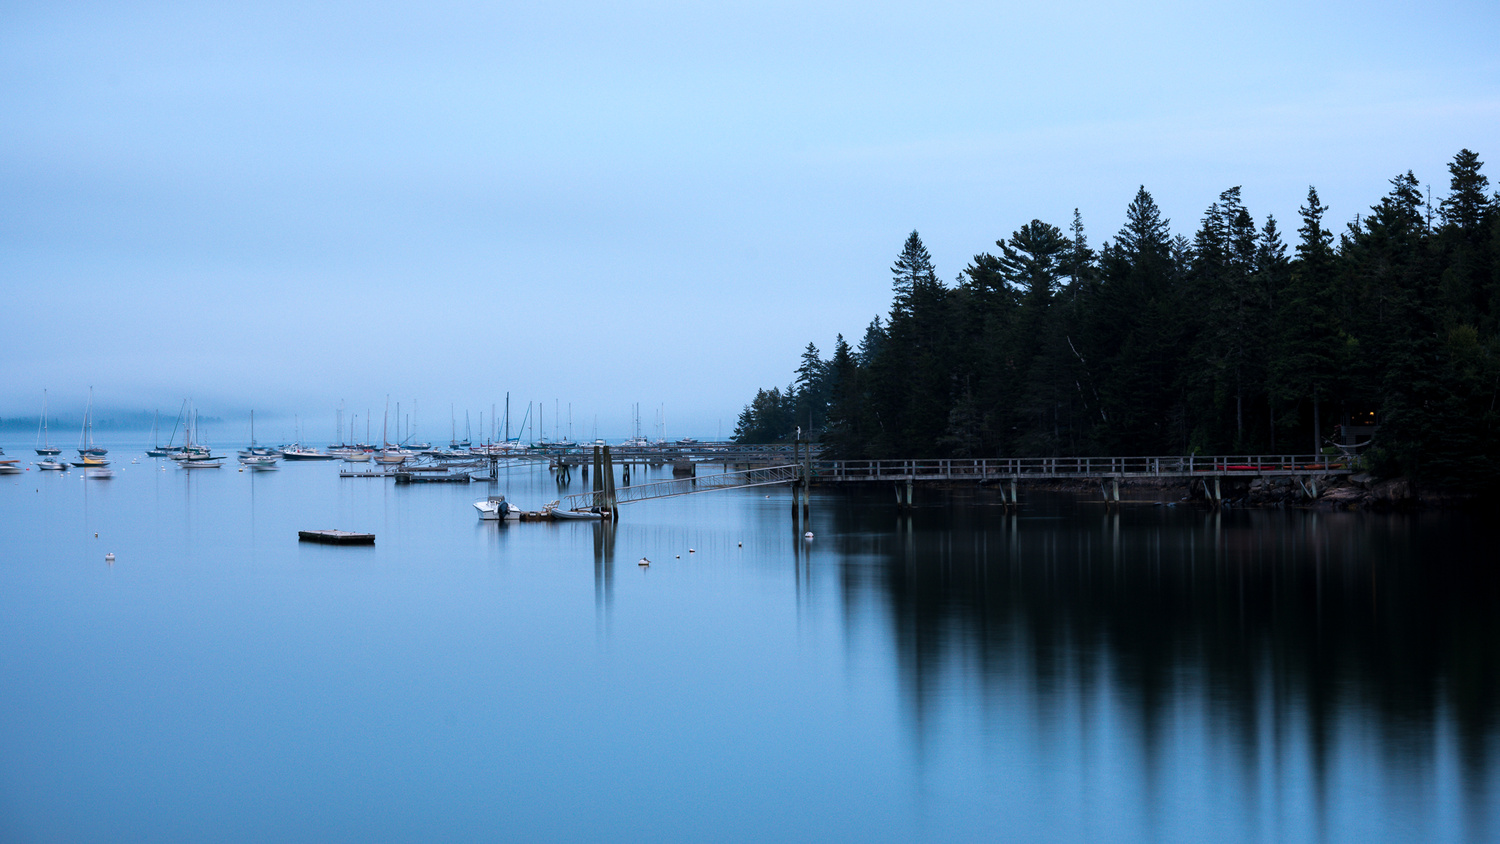 Cool Harbor by Margie Mackrell